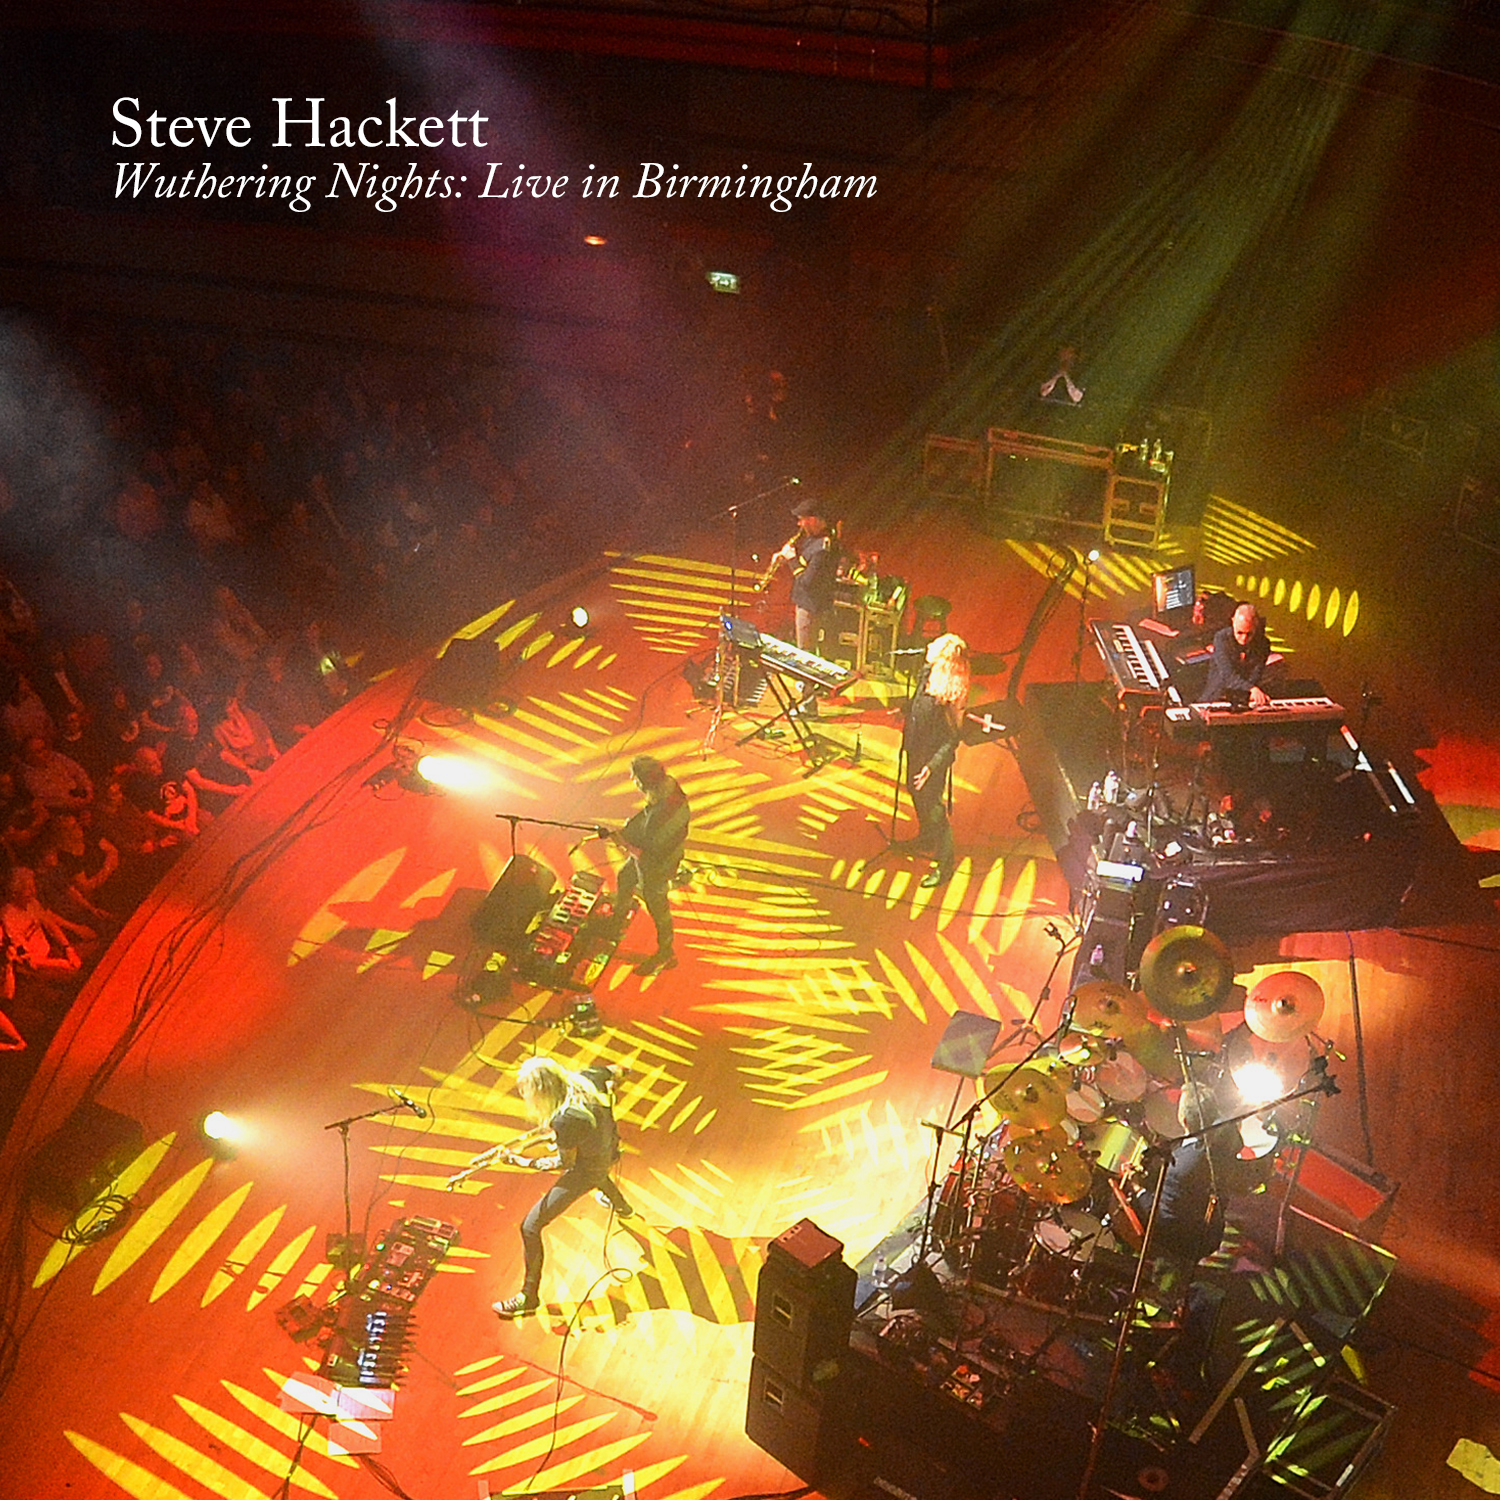 Steve Hackett announces new live album Wuthering Nights: Live in Birmingham